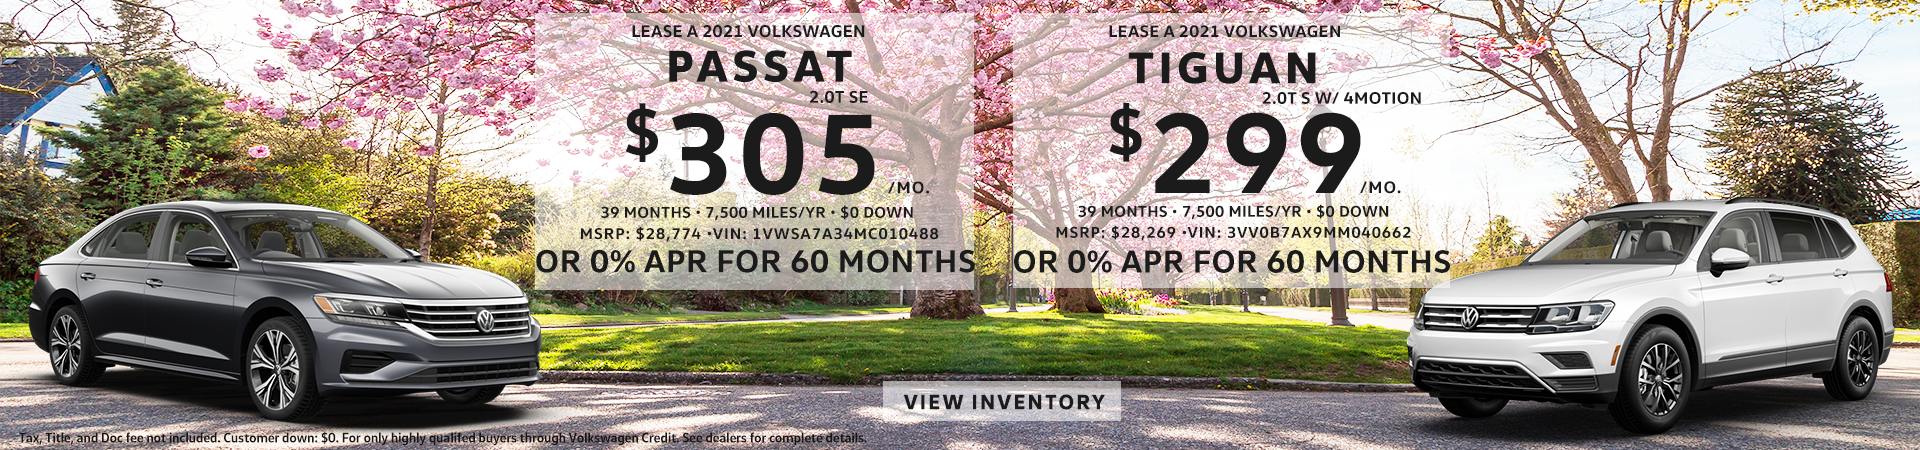 Tiguan and Passat Eastside VW May 21